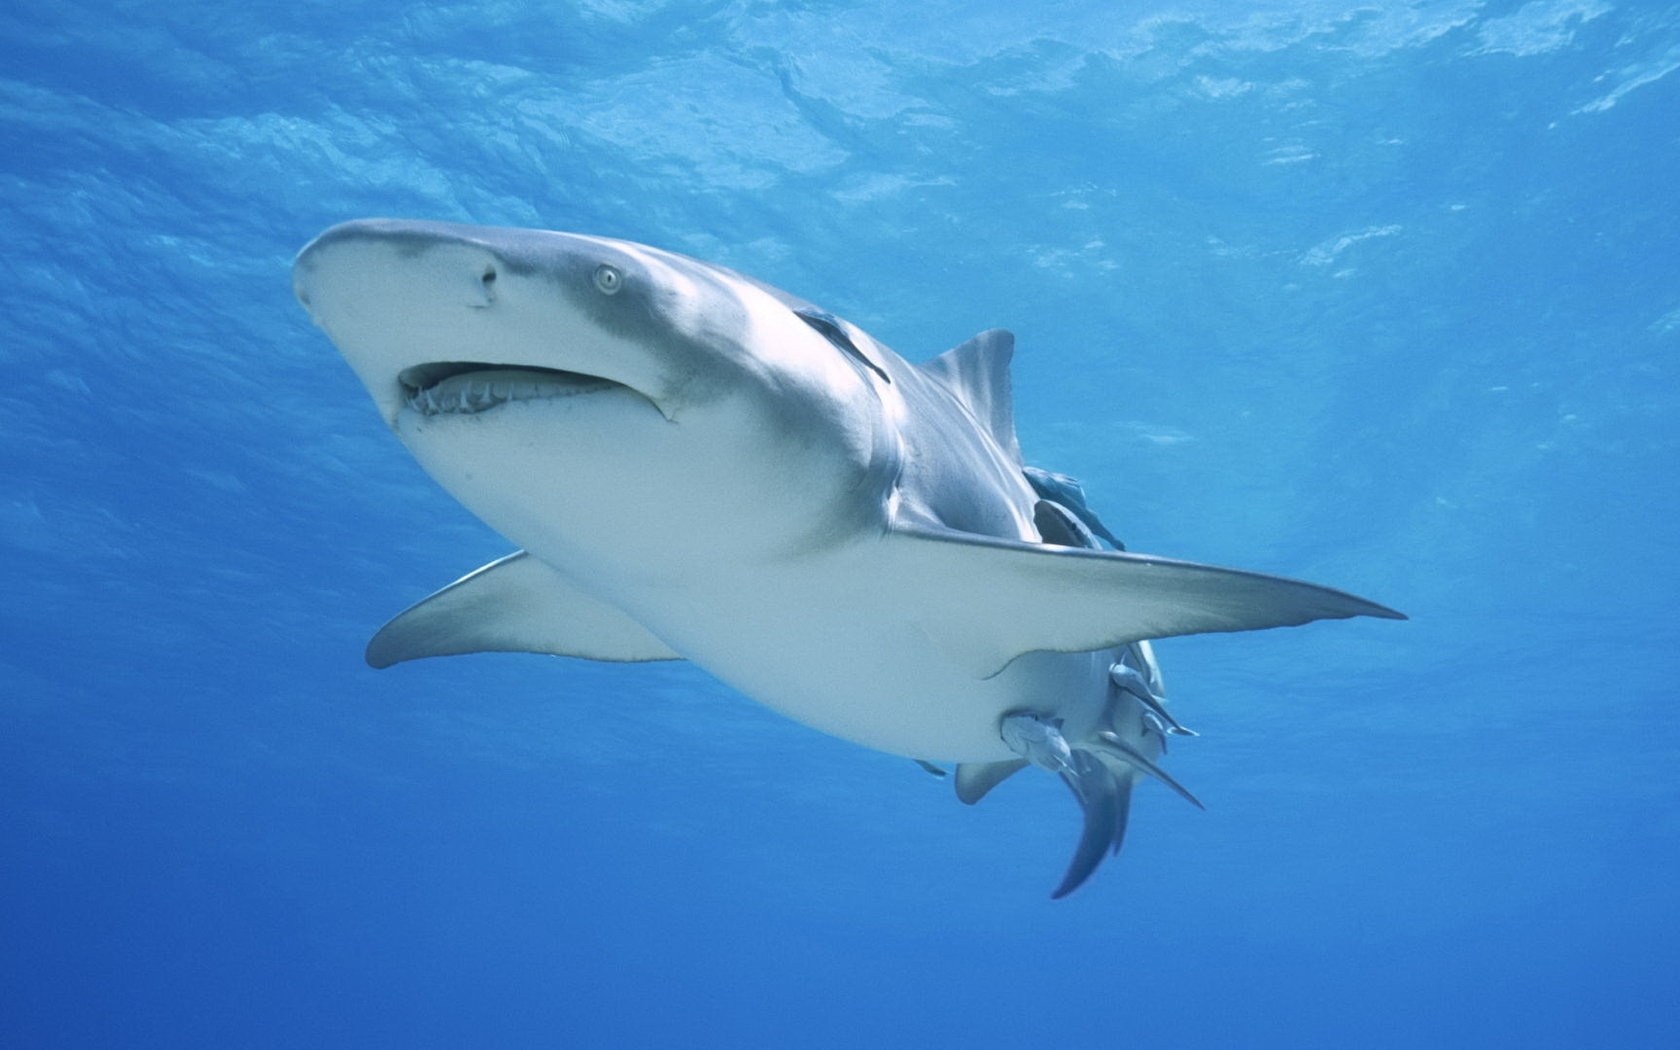 27069 download wallpaper Animals, Sharks, Fishes screensavers and pictures for free